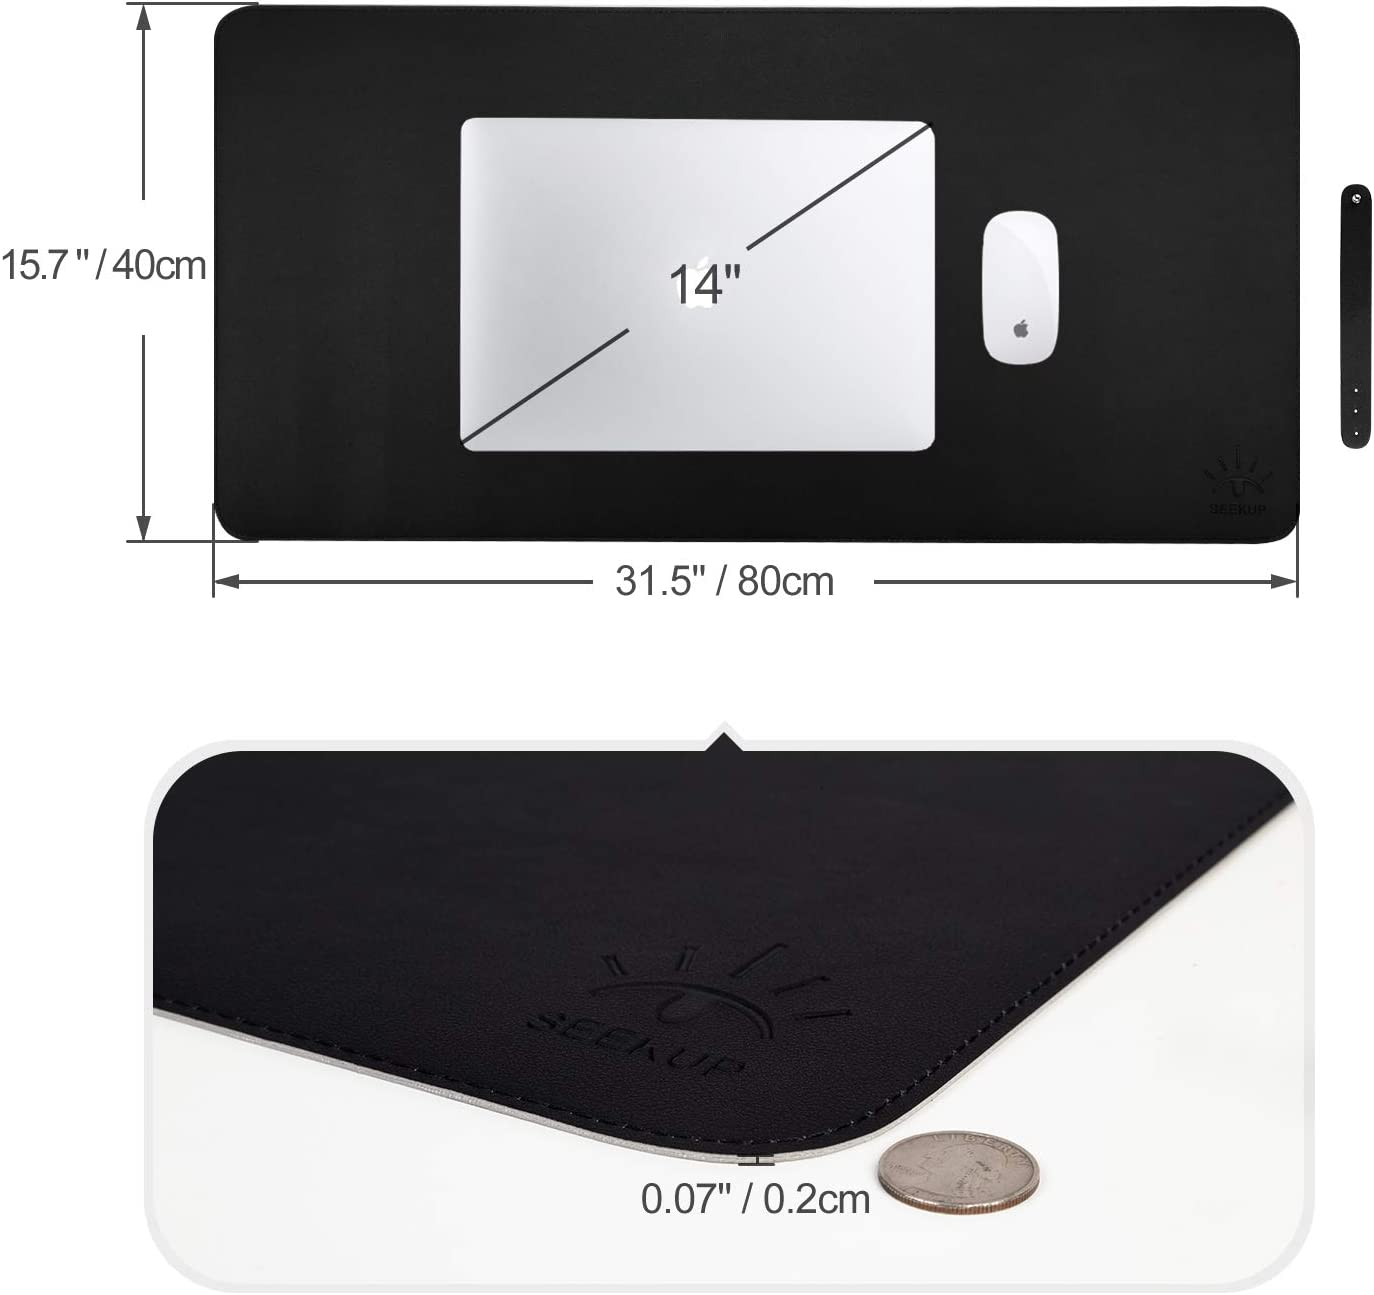 "Black/Gray Dual Sided PU Leather Desk Pad, Upgrade Sewing Office Laptop Mat, Waterproof Large Mouse Pad, Non-Slip Writing Mat Desk Blotter Protector for Office/Home, 31.5""x15.7"" : Office Products"